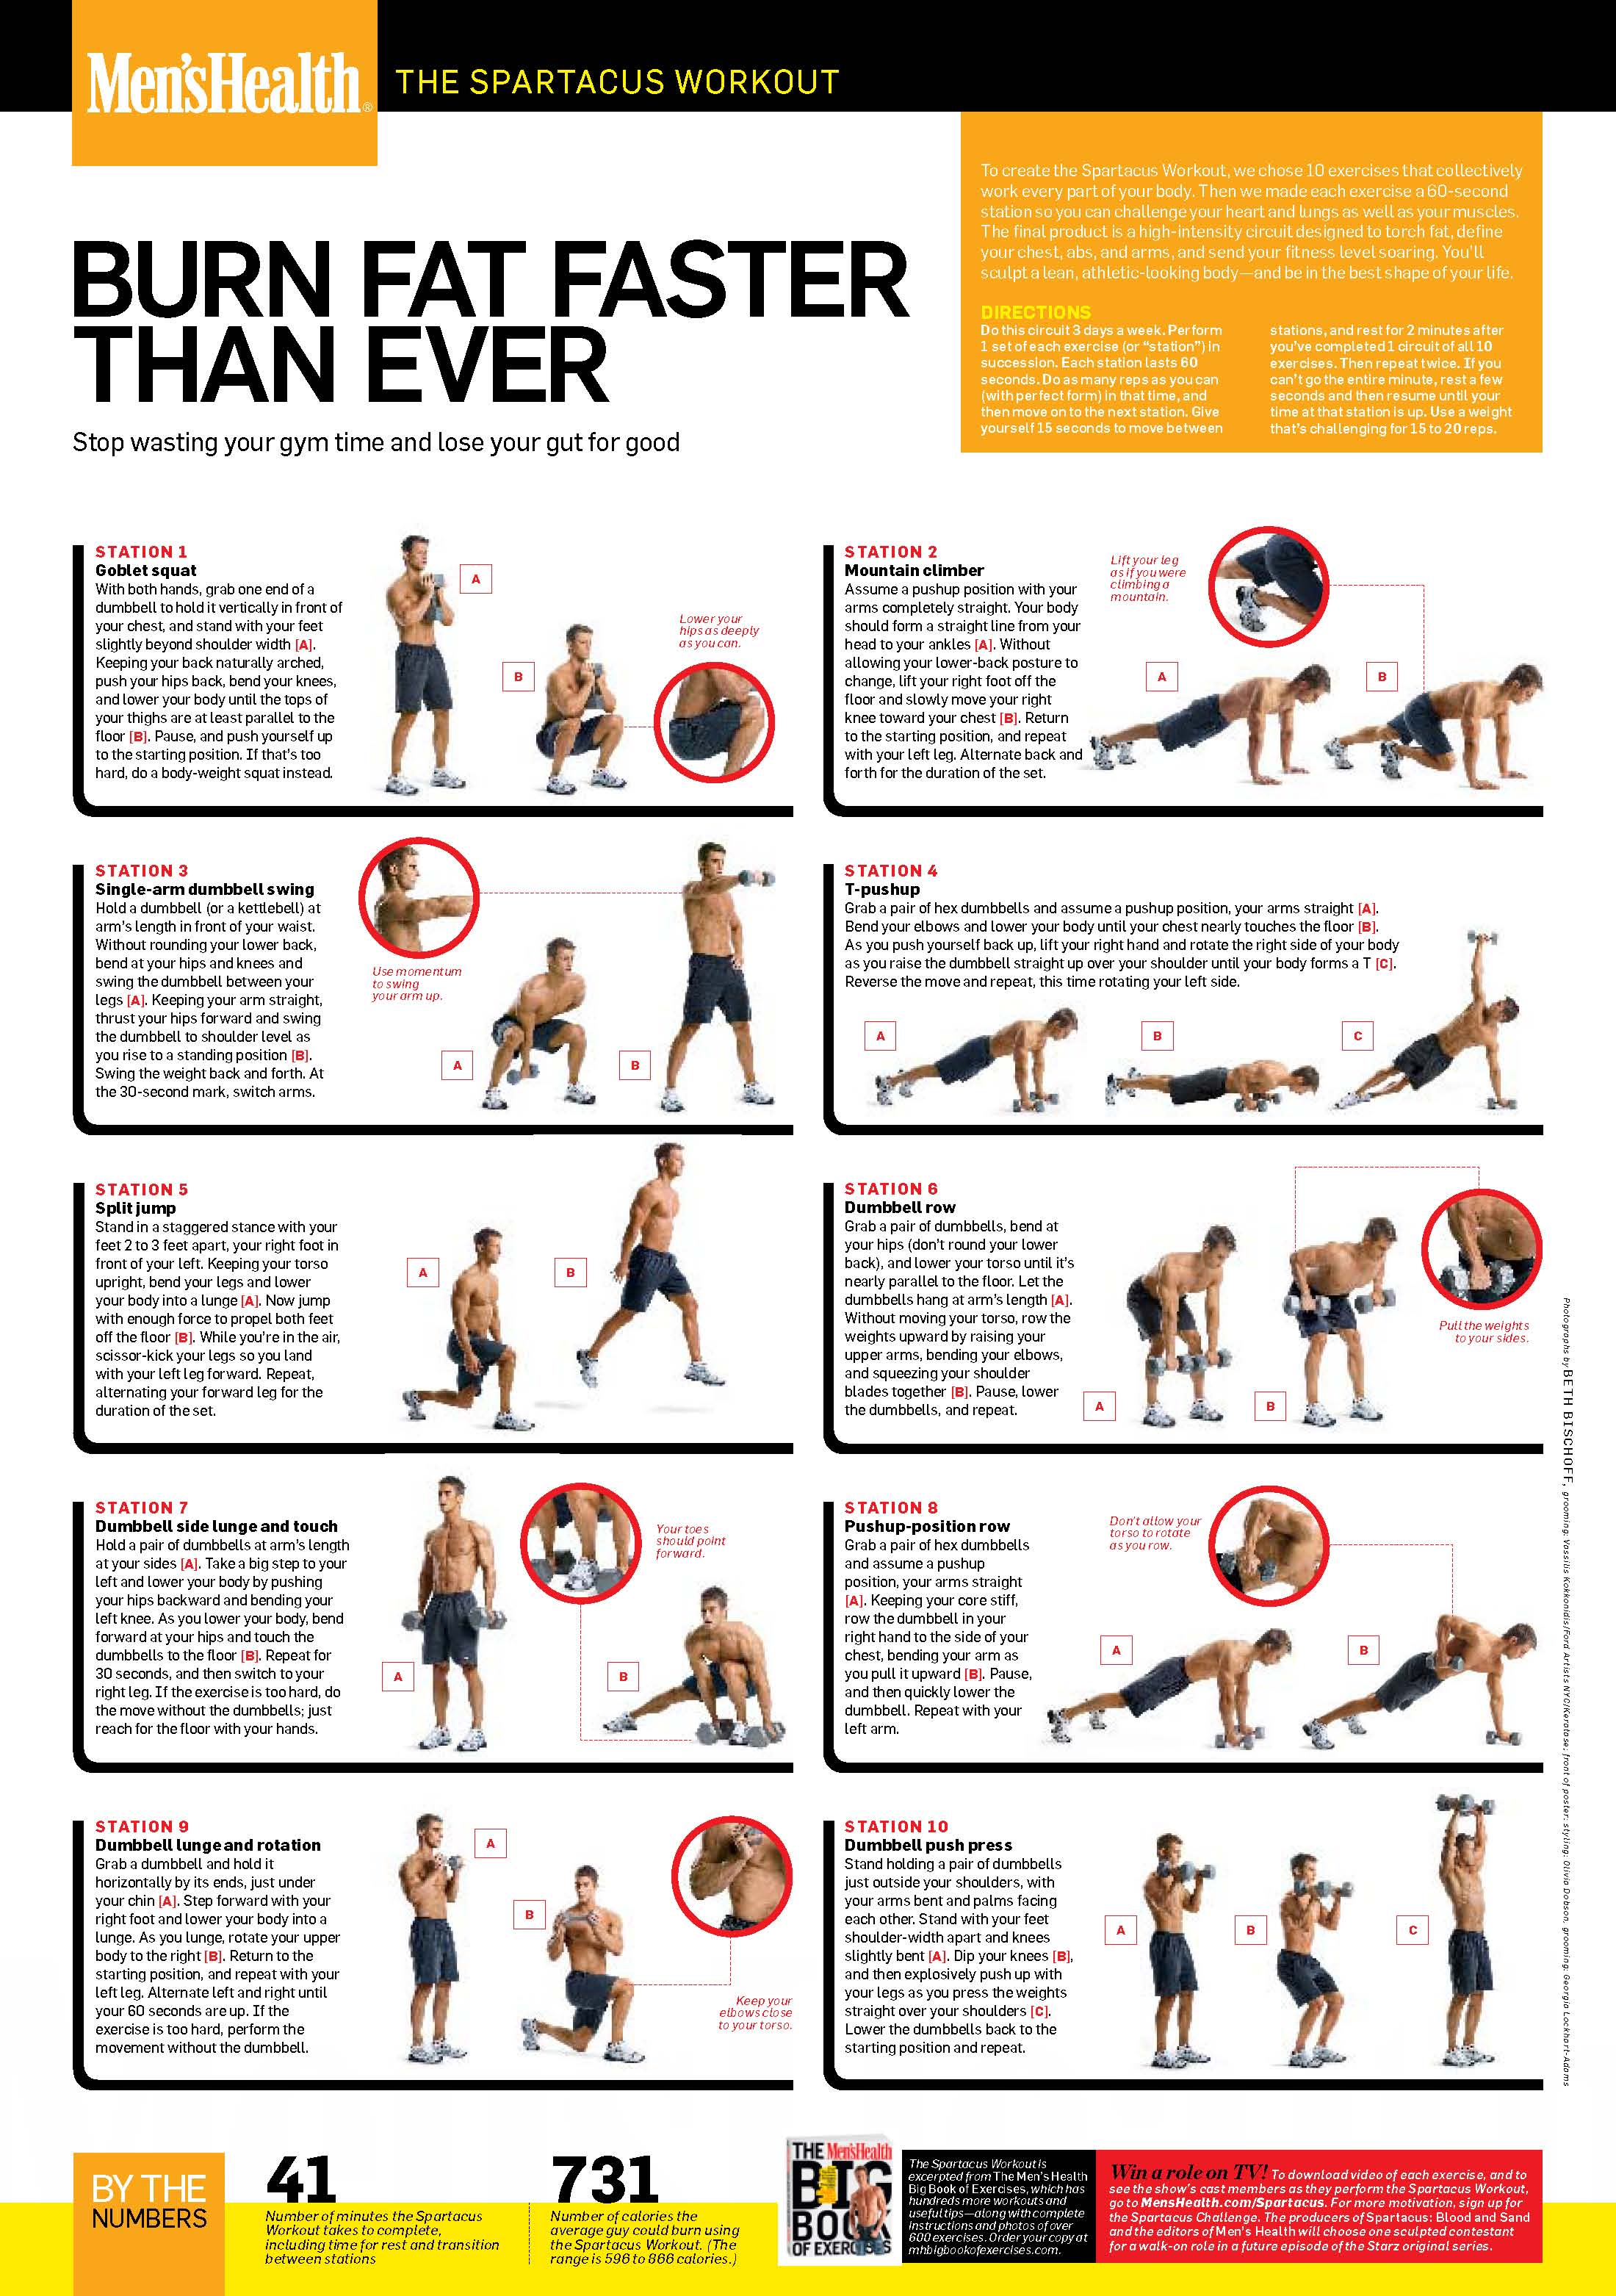 Gym Workout Chart For Chest For Men Sweet Free Downloadable Fitness Plans Seth Bluman Fitness